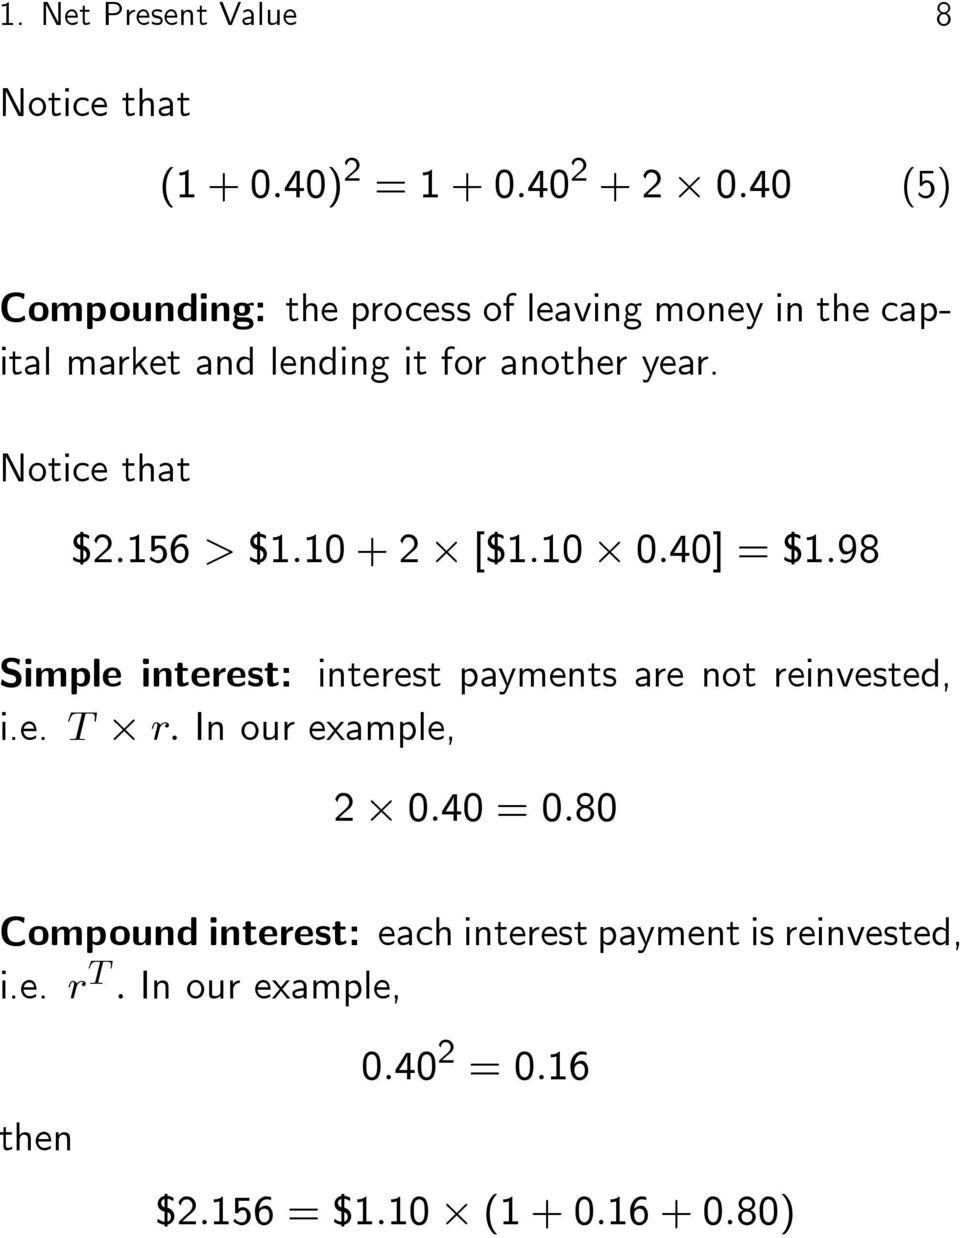 Notice that $2:156 > $1:10 + 2 [$1:10 0:40] = $1:98 Simple interest: interest payments are not reinvested, i.e. T r: In our example, 2 0:40 = 0:80 Compound interest: each interest payment is reinvested, i.